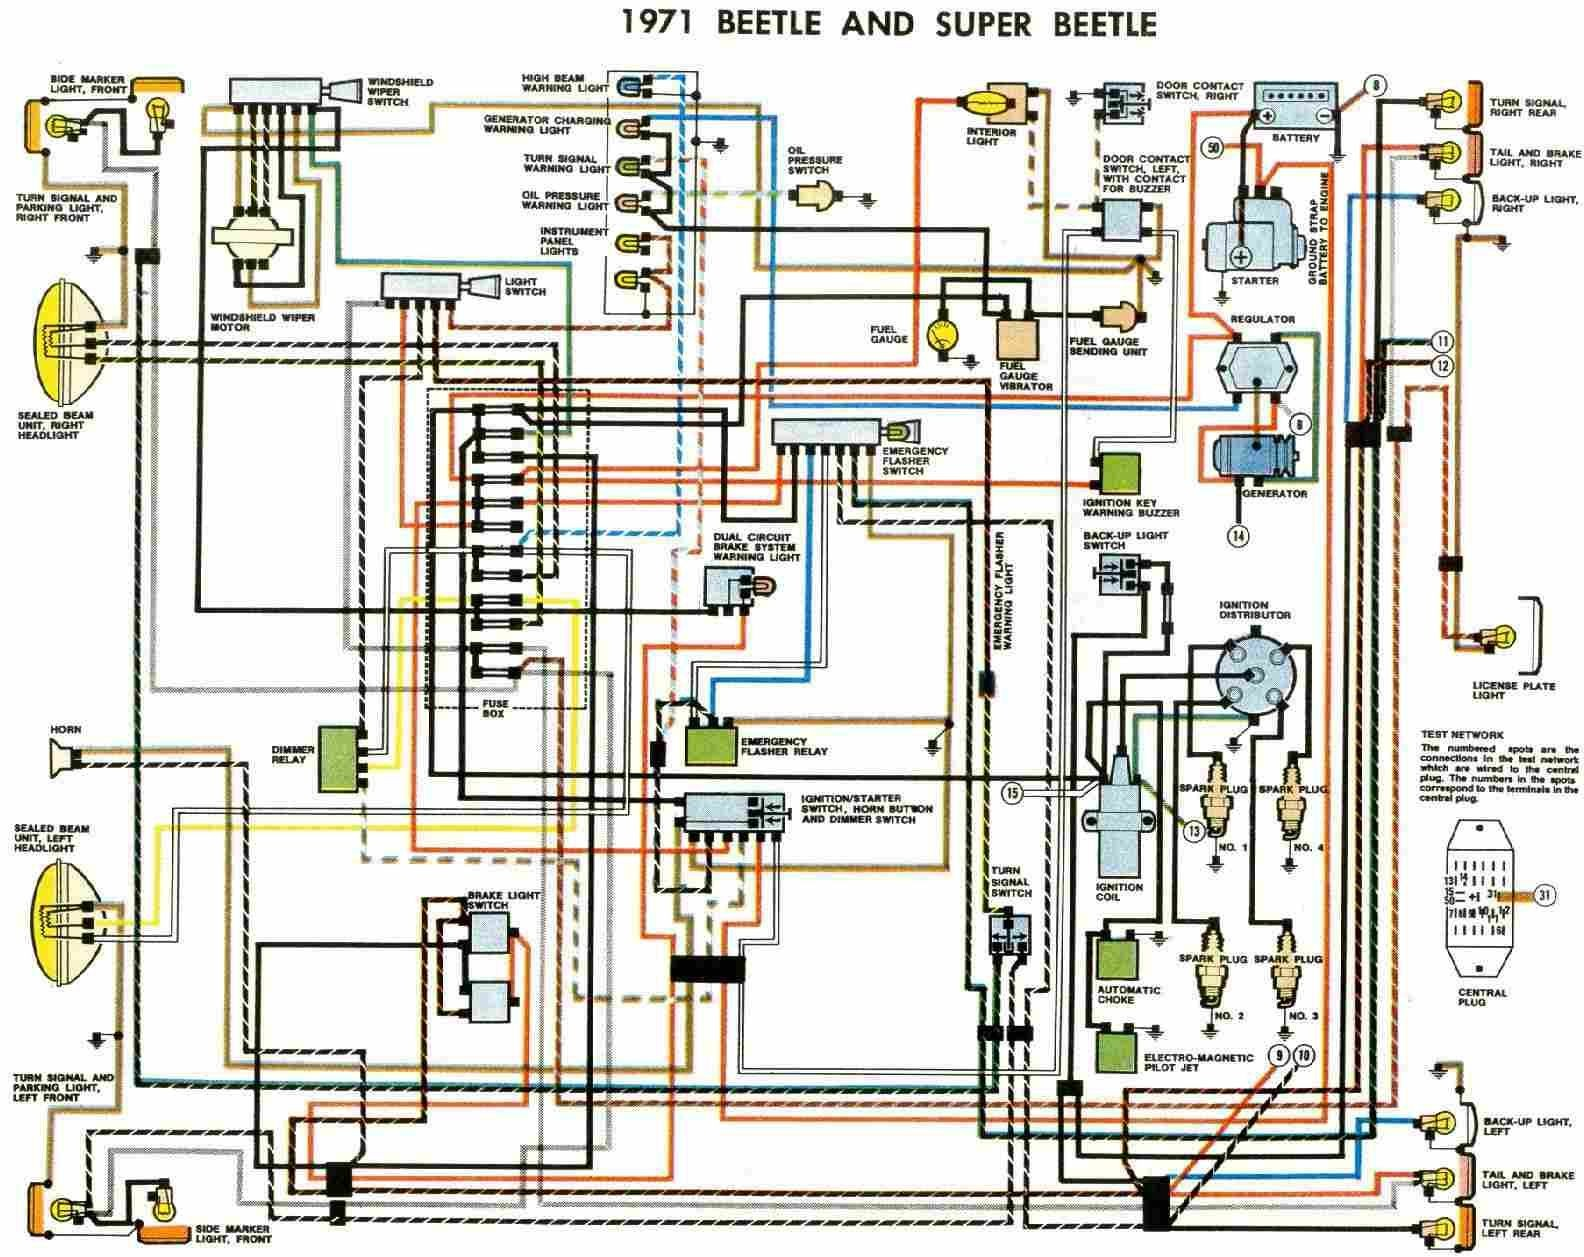 2000 Vw Beetle Parts Diagram Free Auto Wiring Diagram 1971 Vw Beetle and Super Beetle